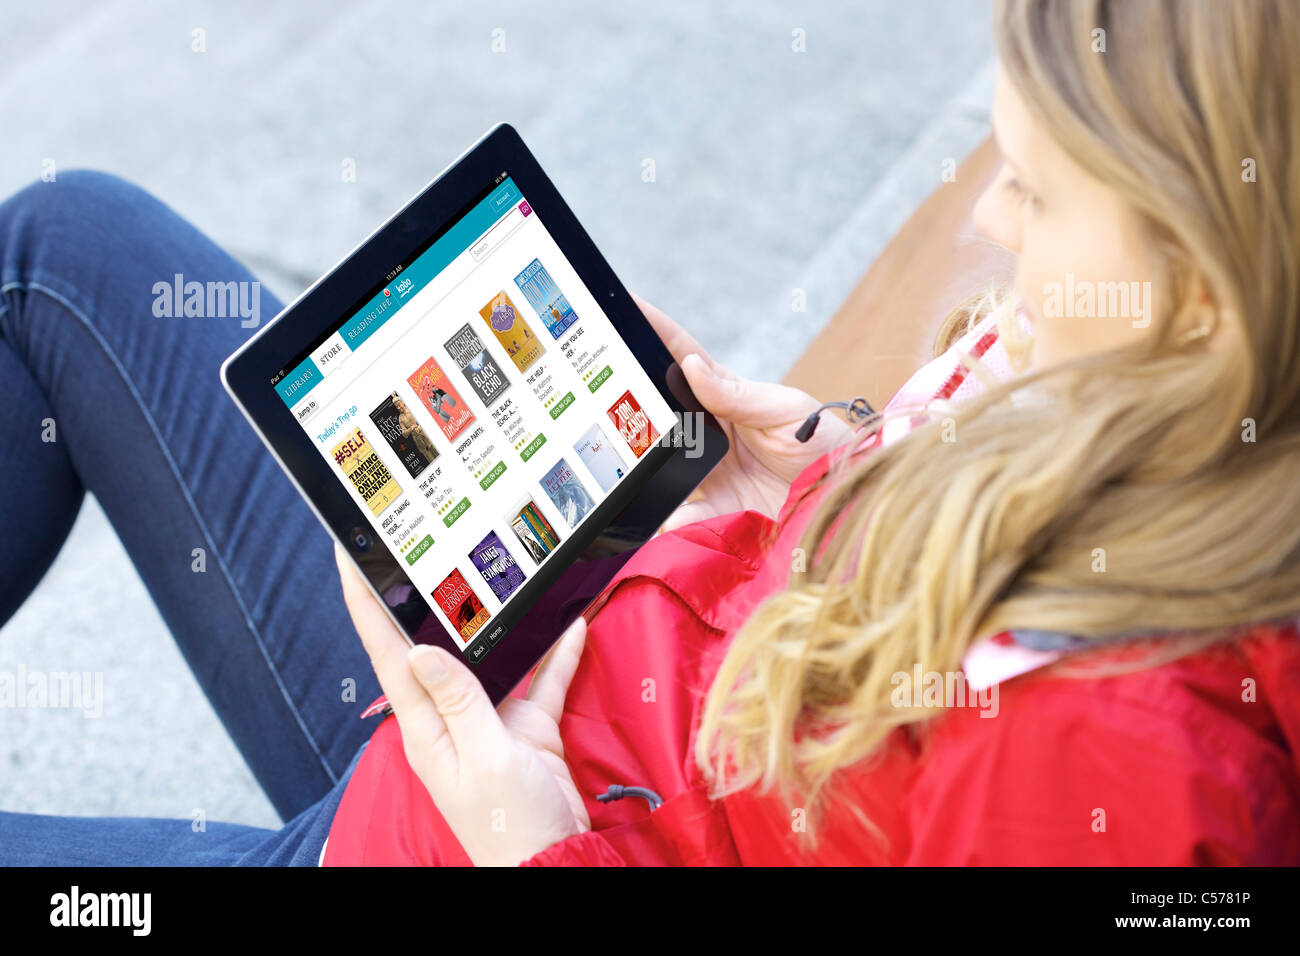 Close up view of woman's browsing Kobo online book store app on an